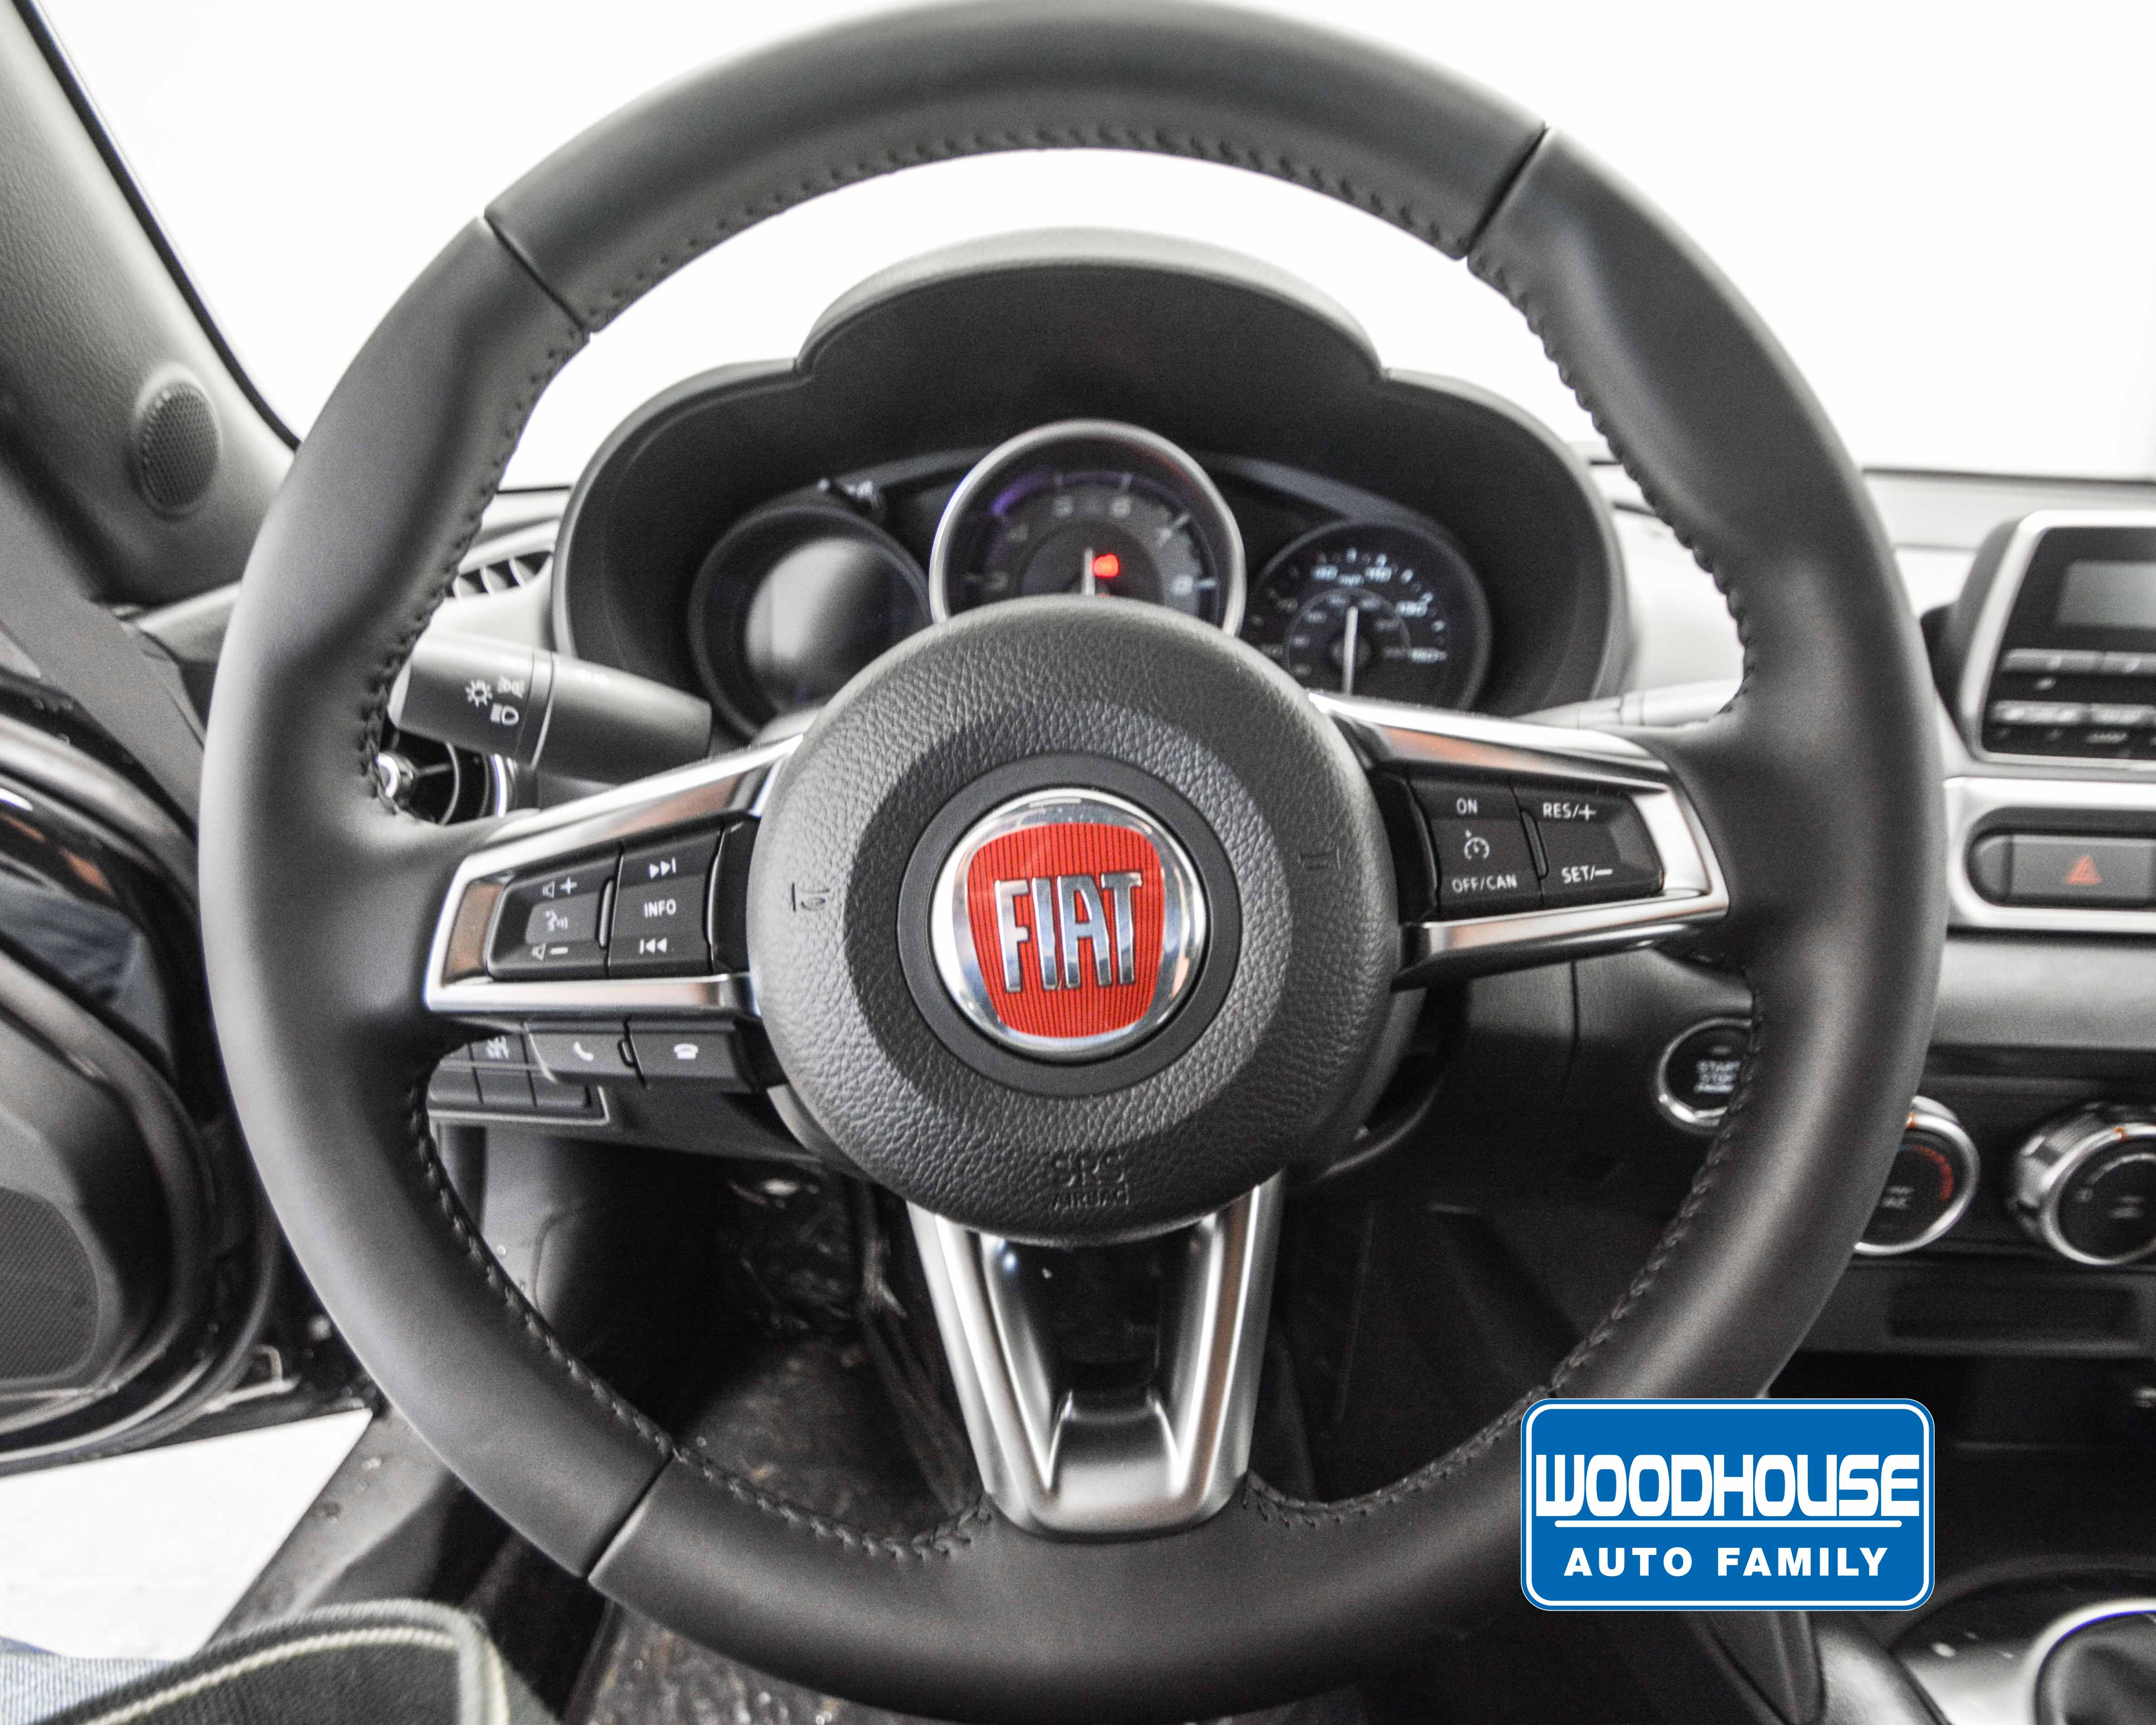 Woodhouse Hyundai Omaha >> Woodhouse | New 2018 Fiat Spider For Sale | Chrysler Dodge Jeep Ram